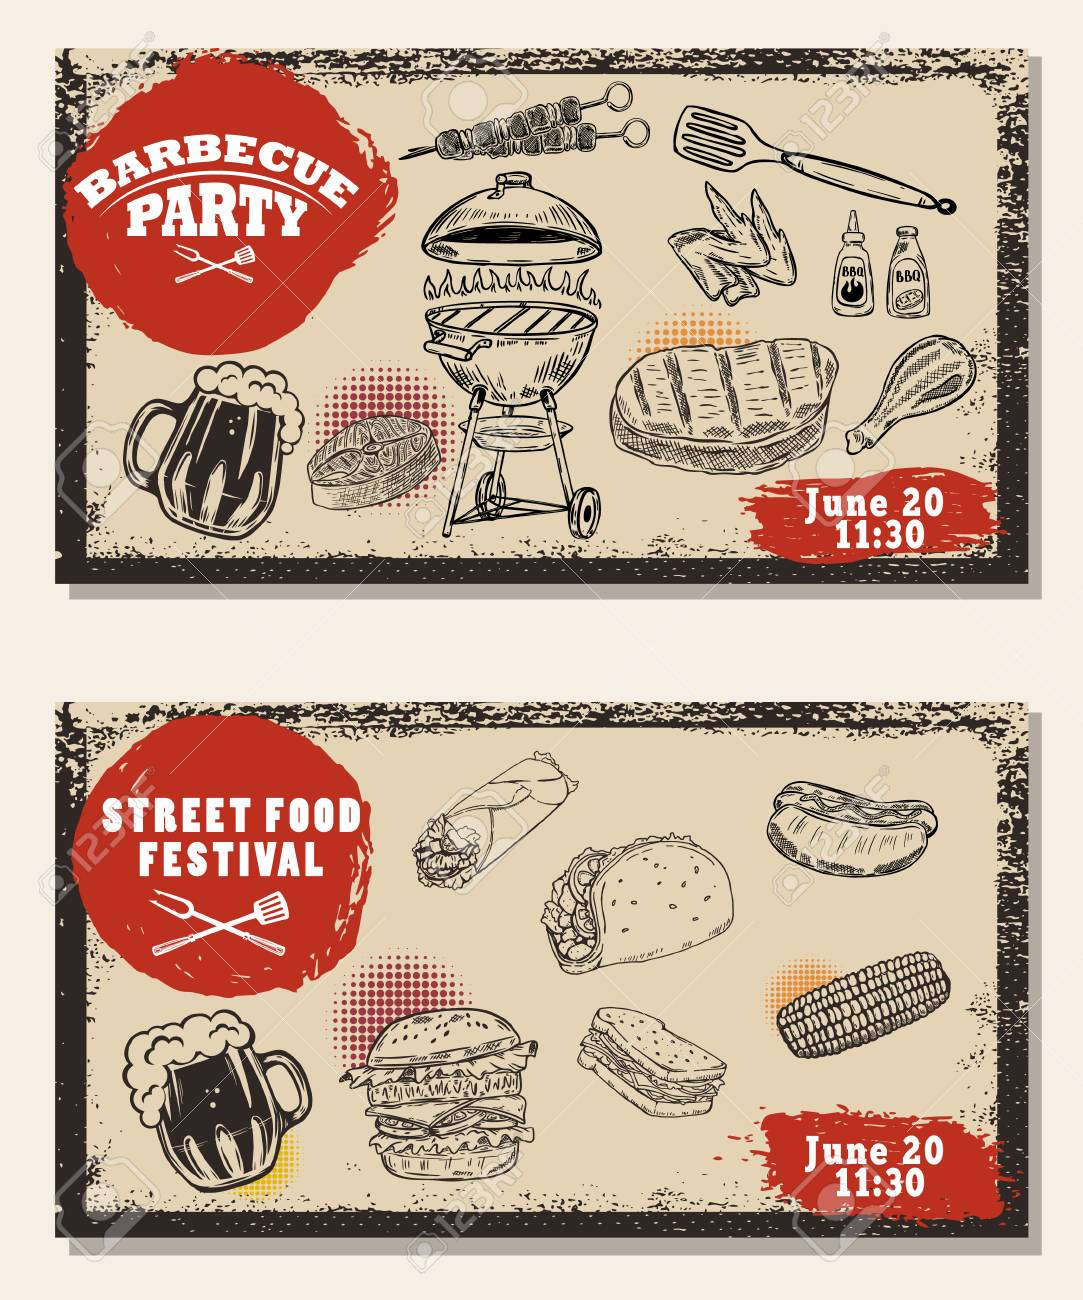 Set of bbq party invitation templates on light background. Grill, beer,meat, burger ,steak. Street food festival - 80906977